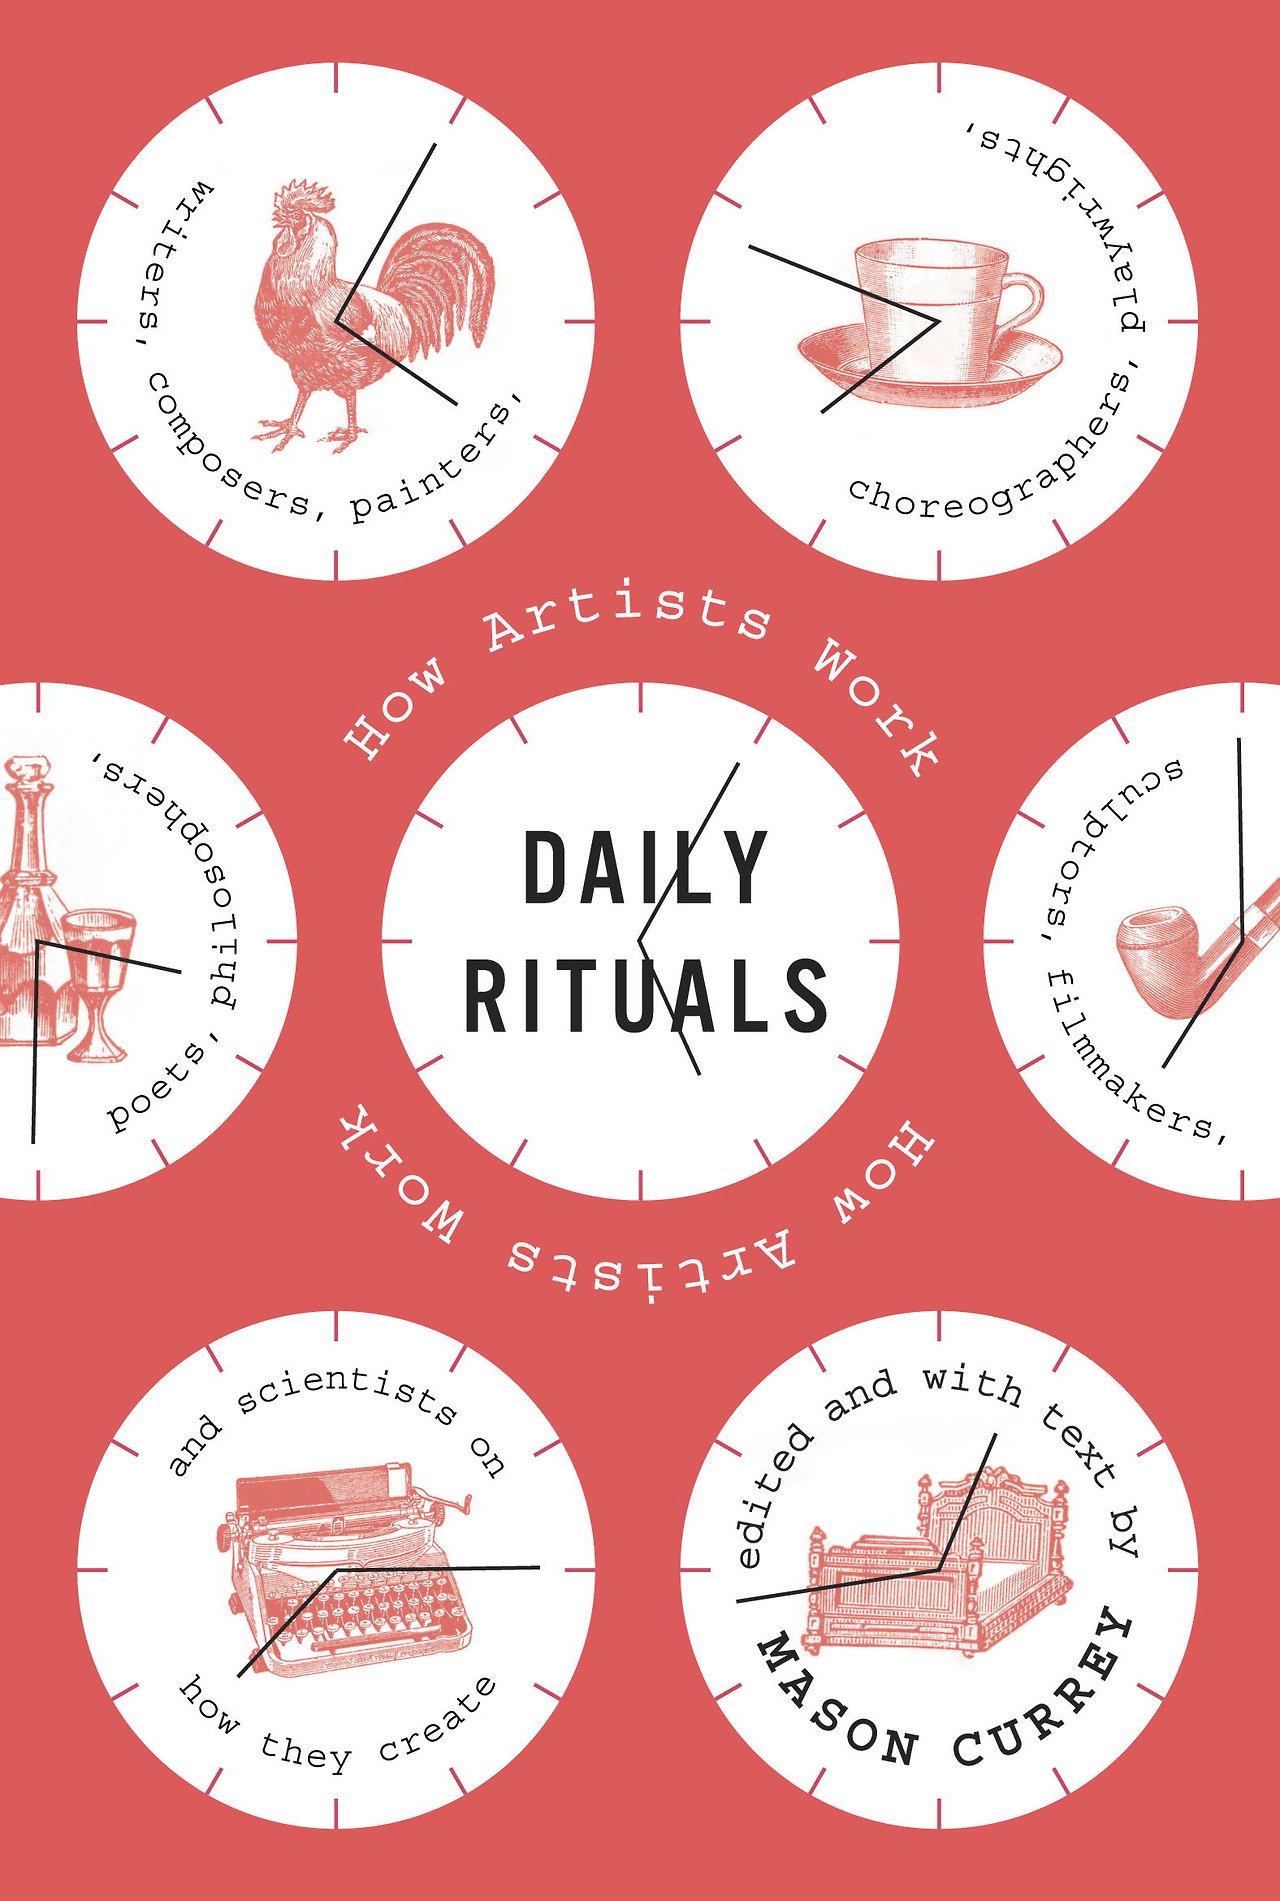 """austinkleon :        Daily Rituals: How Artists Work  by Mason Currey       """"Sooner or later, the great men turn out to be all alike. They never stop working. They never lose a minute. It is very depressing.""""  —V.S. Pritchett   """"A modern stoic knows that the surest way to discipline passion is to discipline time: decide what you want or ought to do during the day, then always do it at exactly the same moment every day, and passion will give you no trouble.""""  —W.H. Auden     An addictive read—just 1-3 page summaries of the routines of various artists, scientists, etc. It's fun to go through and get ideas for your own work, but mostly it's just fascinating to hear about how people work(ed). (cf. Studs Turkel's   Working  .)    Here are a few bits that rang true to my own experience:    A little bit of work every day adds up.    Anthony Trollope: """"three hours a day will produce as much as a man ought to write.""""   Martin Amis: """"Two hours. I think most writers would be very happy with two hours of concentrated work.""""   Gertrude Stein: """"If you write a half hour a day it makes a lot of writing year by year.""""    Read your work aloud.    Simply reading your work aloud gives you enough distance from it that you can hear what's really going on. Mark Twain would read his day's work aloud to his family after dinner. Maya Angelou would read her stuff to her husband, but not invite him to comment. (Quentin Tarantino does the same—he reads scripts to his friends, but doesn't invite feedback. """"I don't want your input, heavens forbid…"""")    Eat a good breakfast.    I'd like to adopt Carl Jung's breakfast: """"coffee, salami, fruits, bread and butter.""""    A little procrastination can go a long way.    Gerhard Richter: """"I love making plans. I could spend my life arranging things. Weeks go by, and I don't paint until I can't stand it any longer…perhaps I create these little crises as a kind of secret strategy to push myself.""""   Joseph Heller: """"Television drove me back to  Catch-22 . I could"""